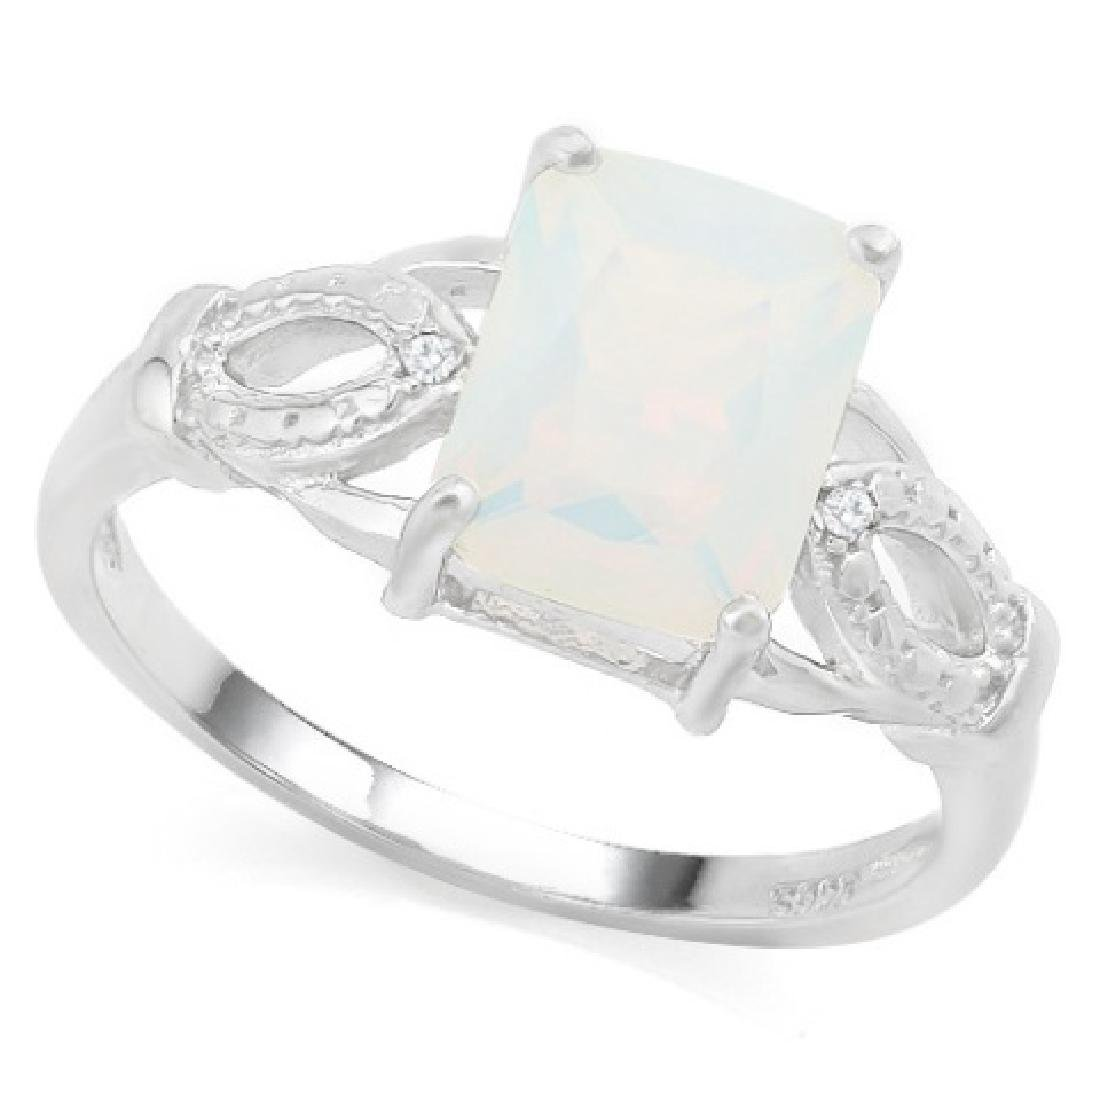 2CT SPARKLING FIRE OPAL/DIAMOND STERLING RING